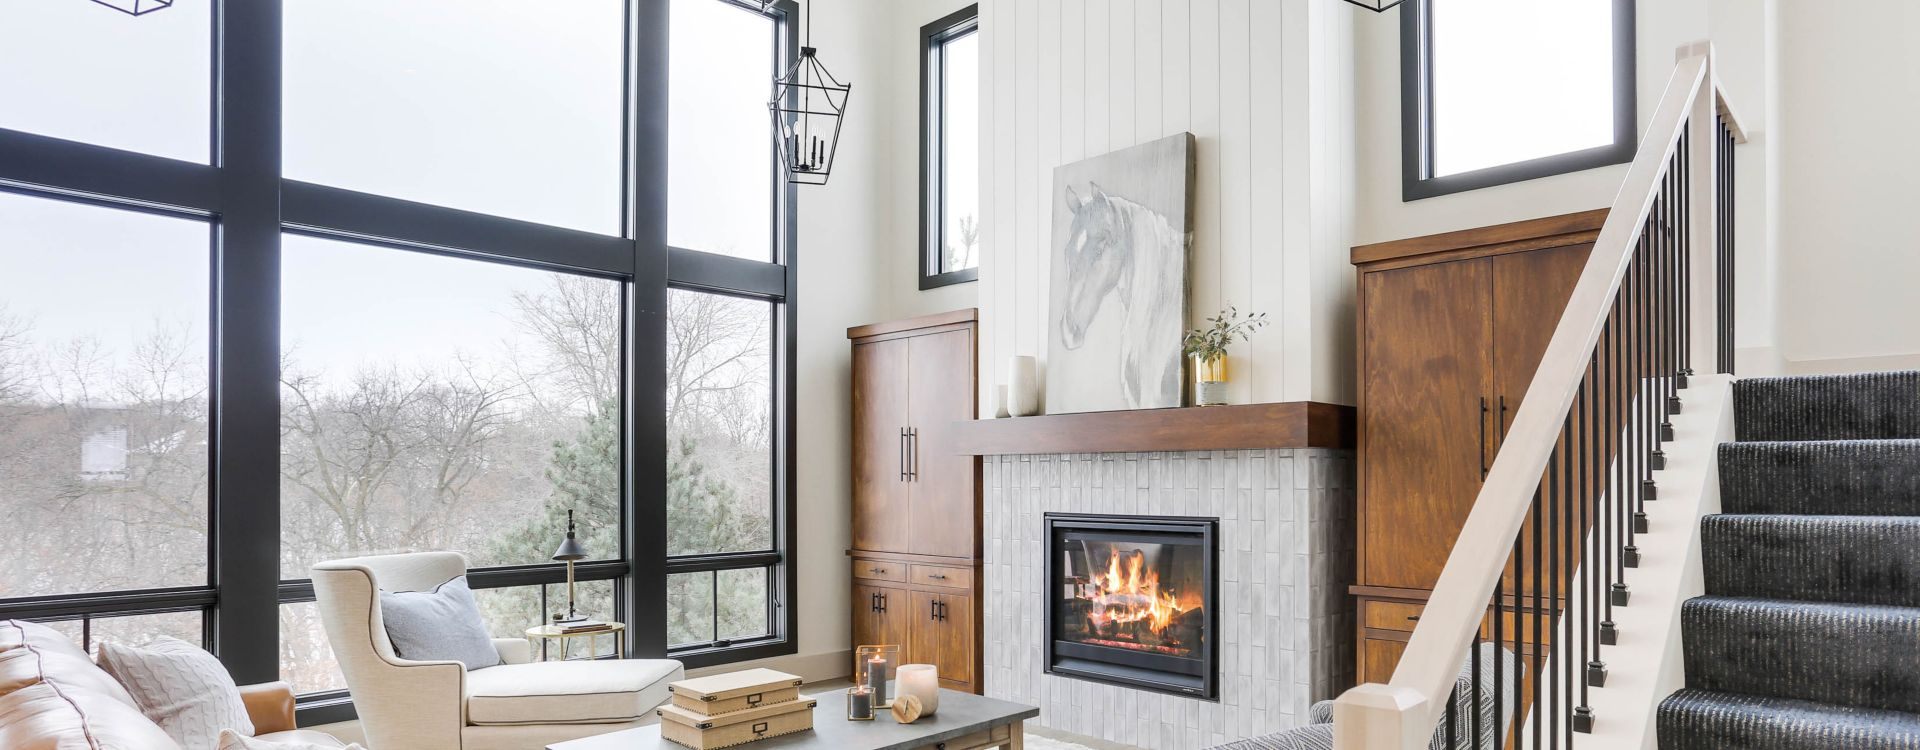 Fireplace Tile Ideas For 2019 The Tile Shop